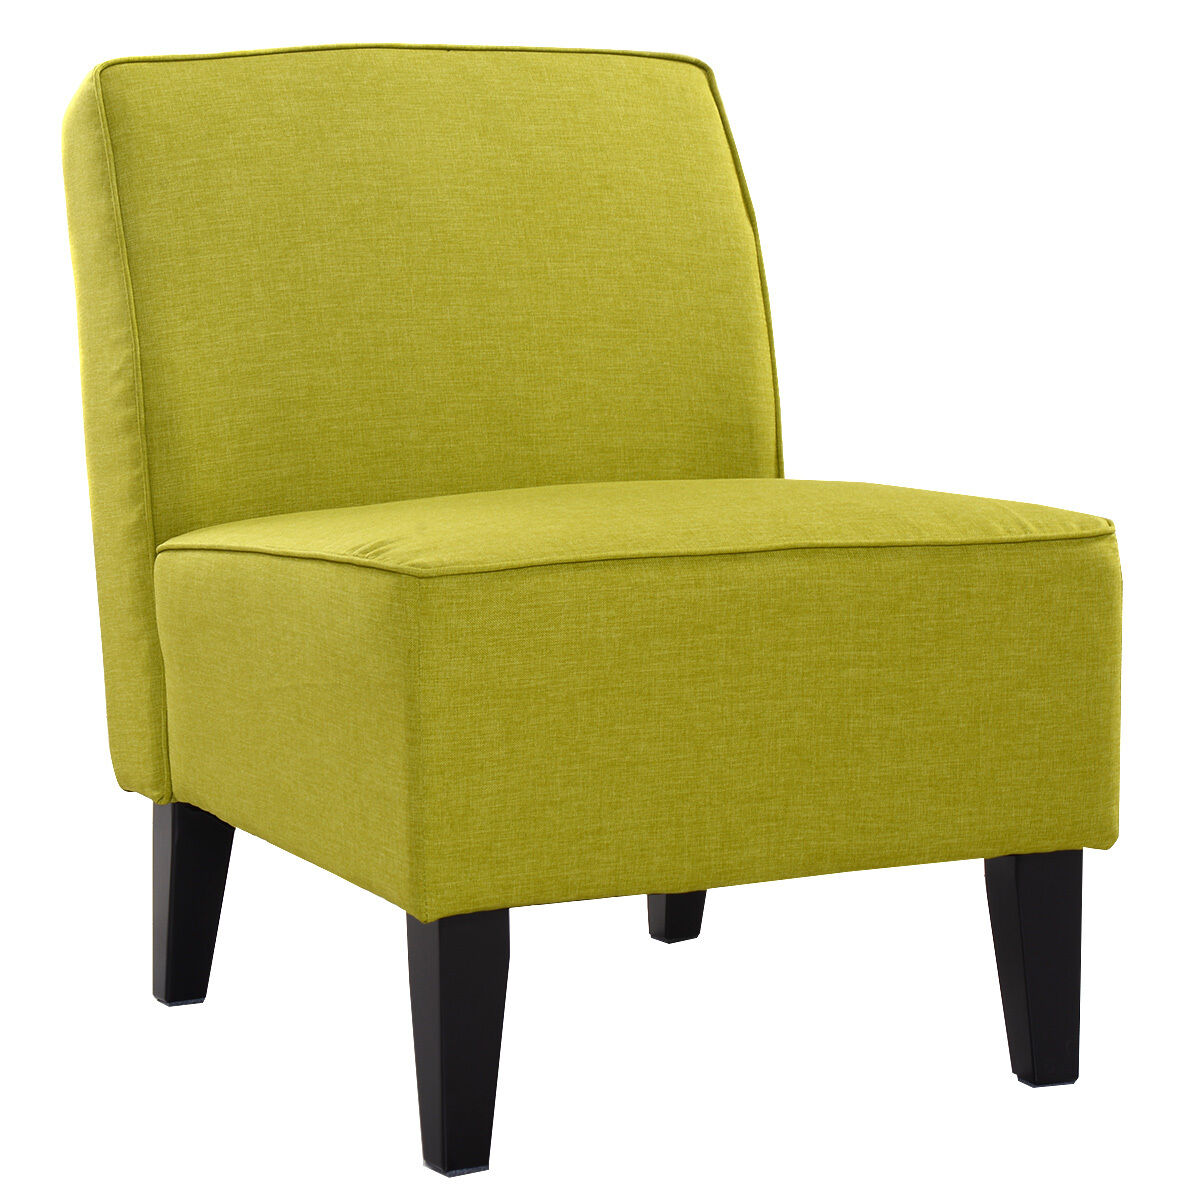 details about deco accent chair solid armless living room bedroom